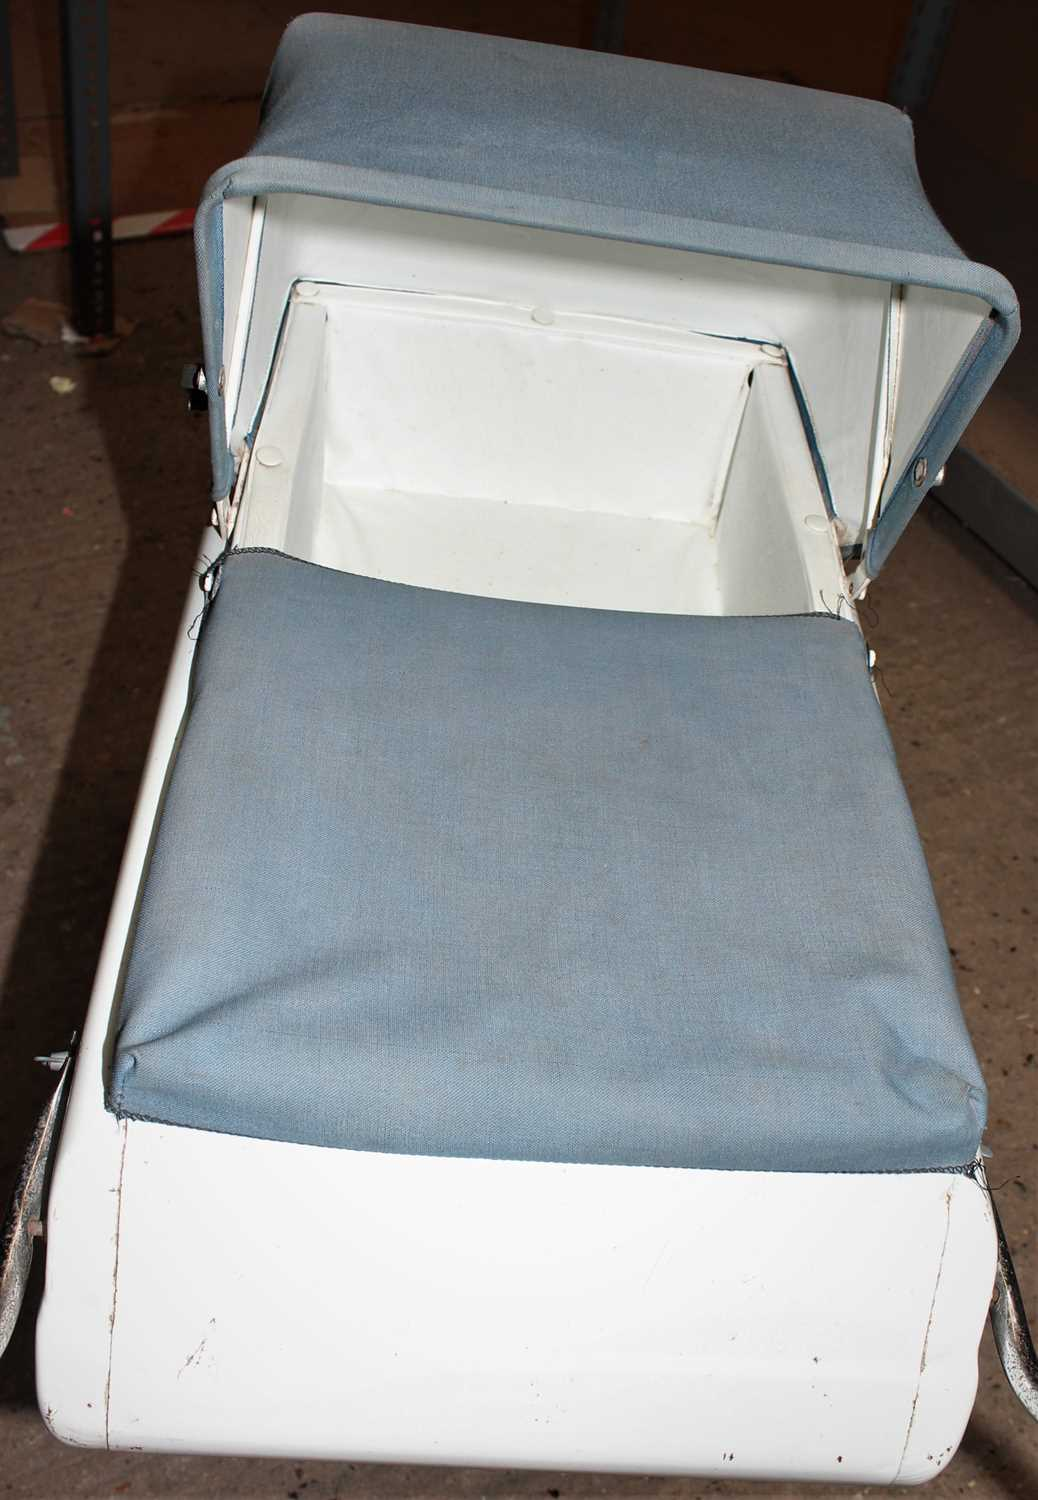 Triang dolls pram, circa mid 1960s in good condition for age, complete with original cover and hood. - Image 3 of 3